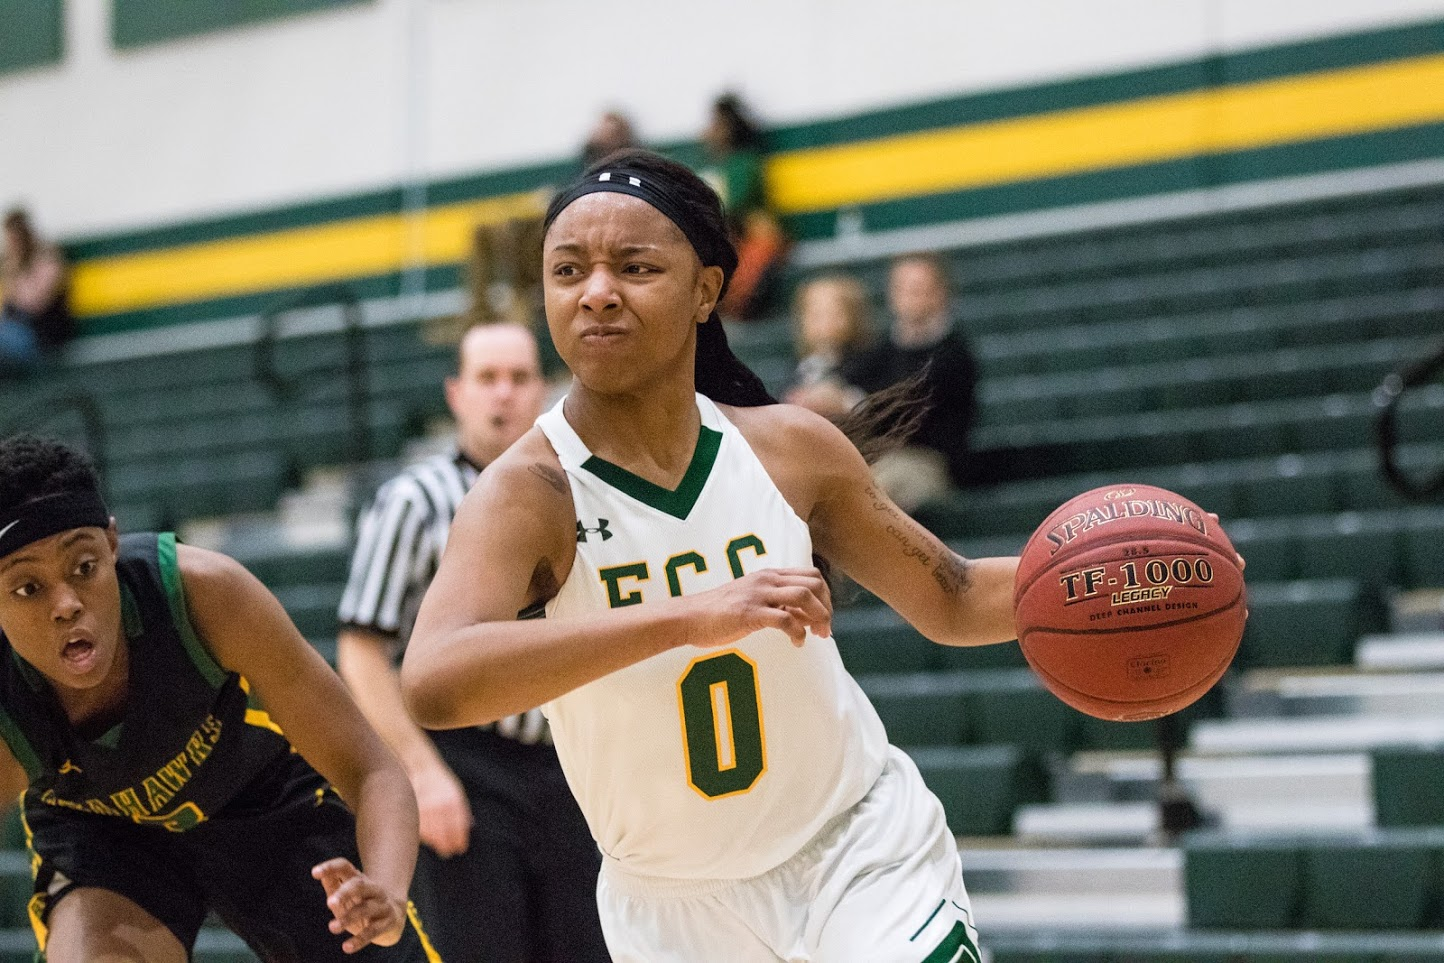 Women's basketball hangs on for close win over Cecil College